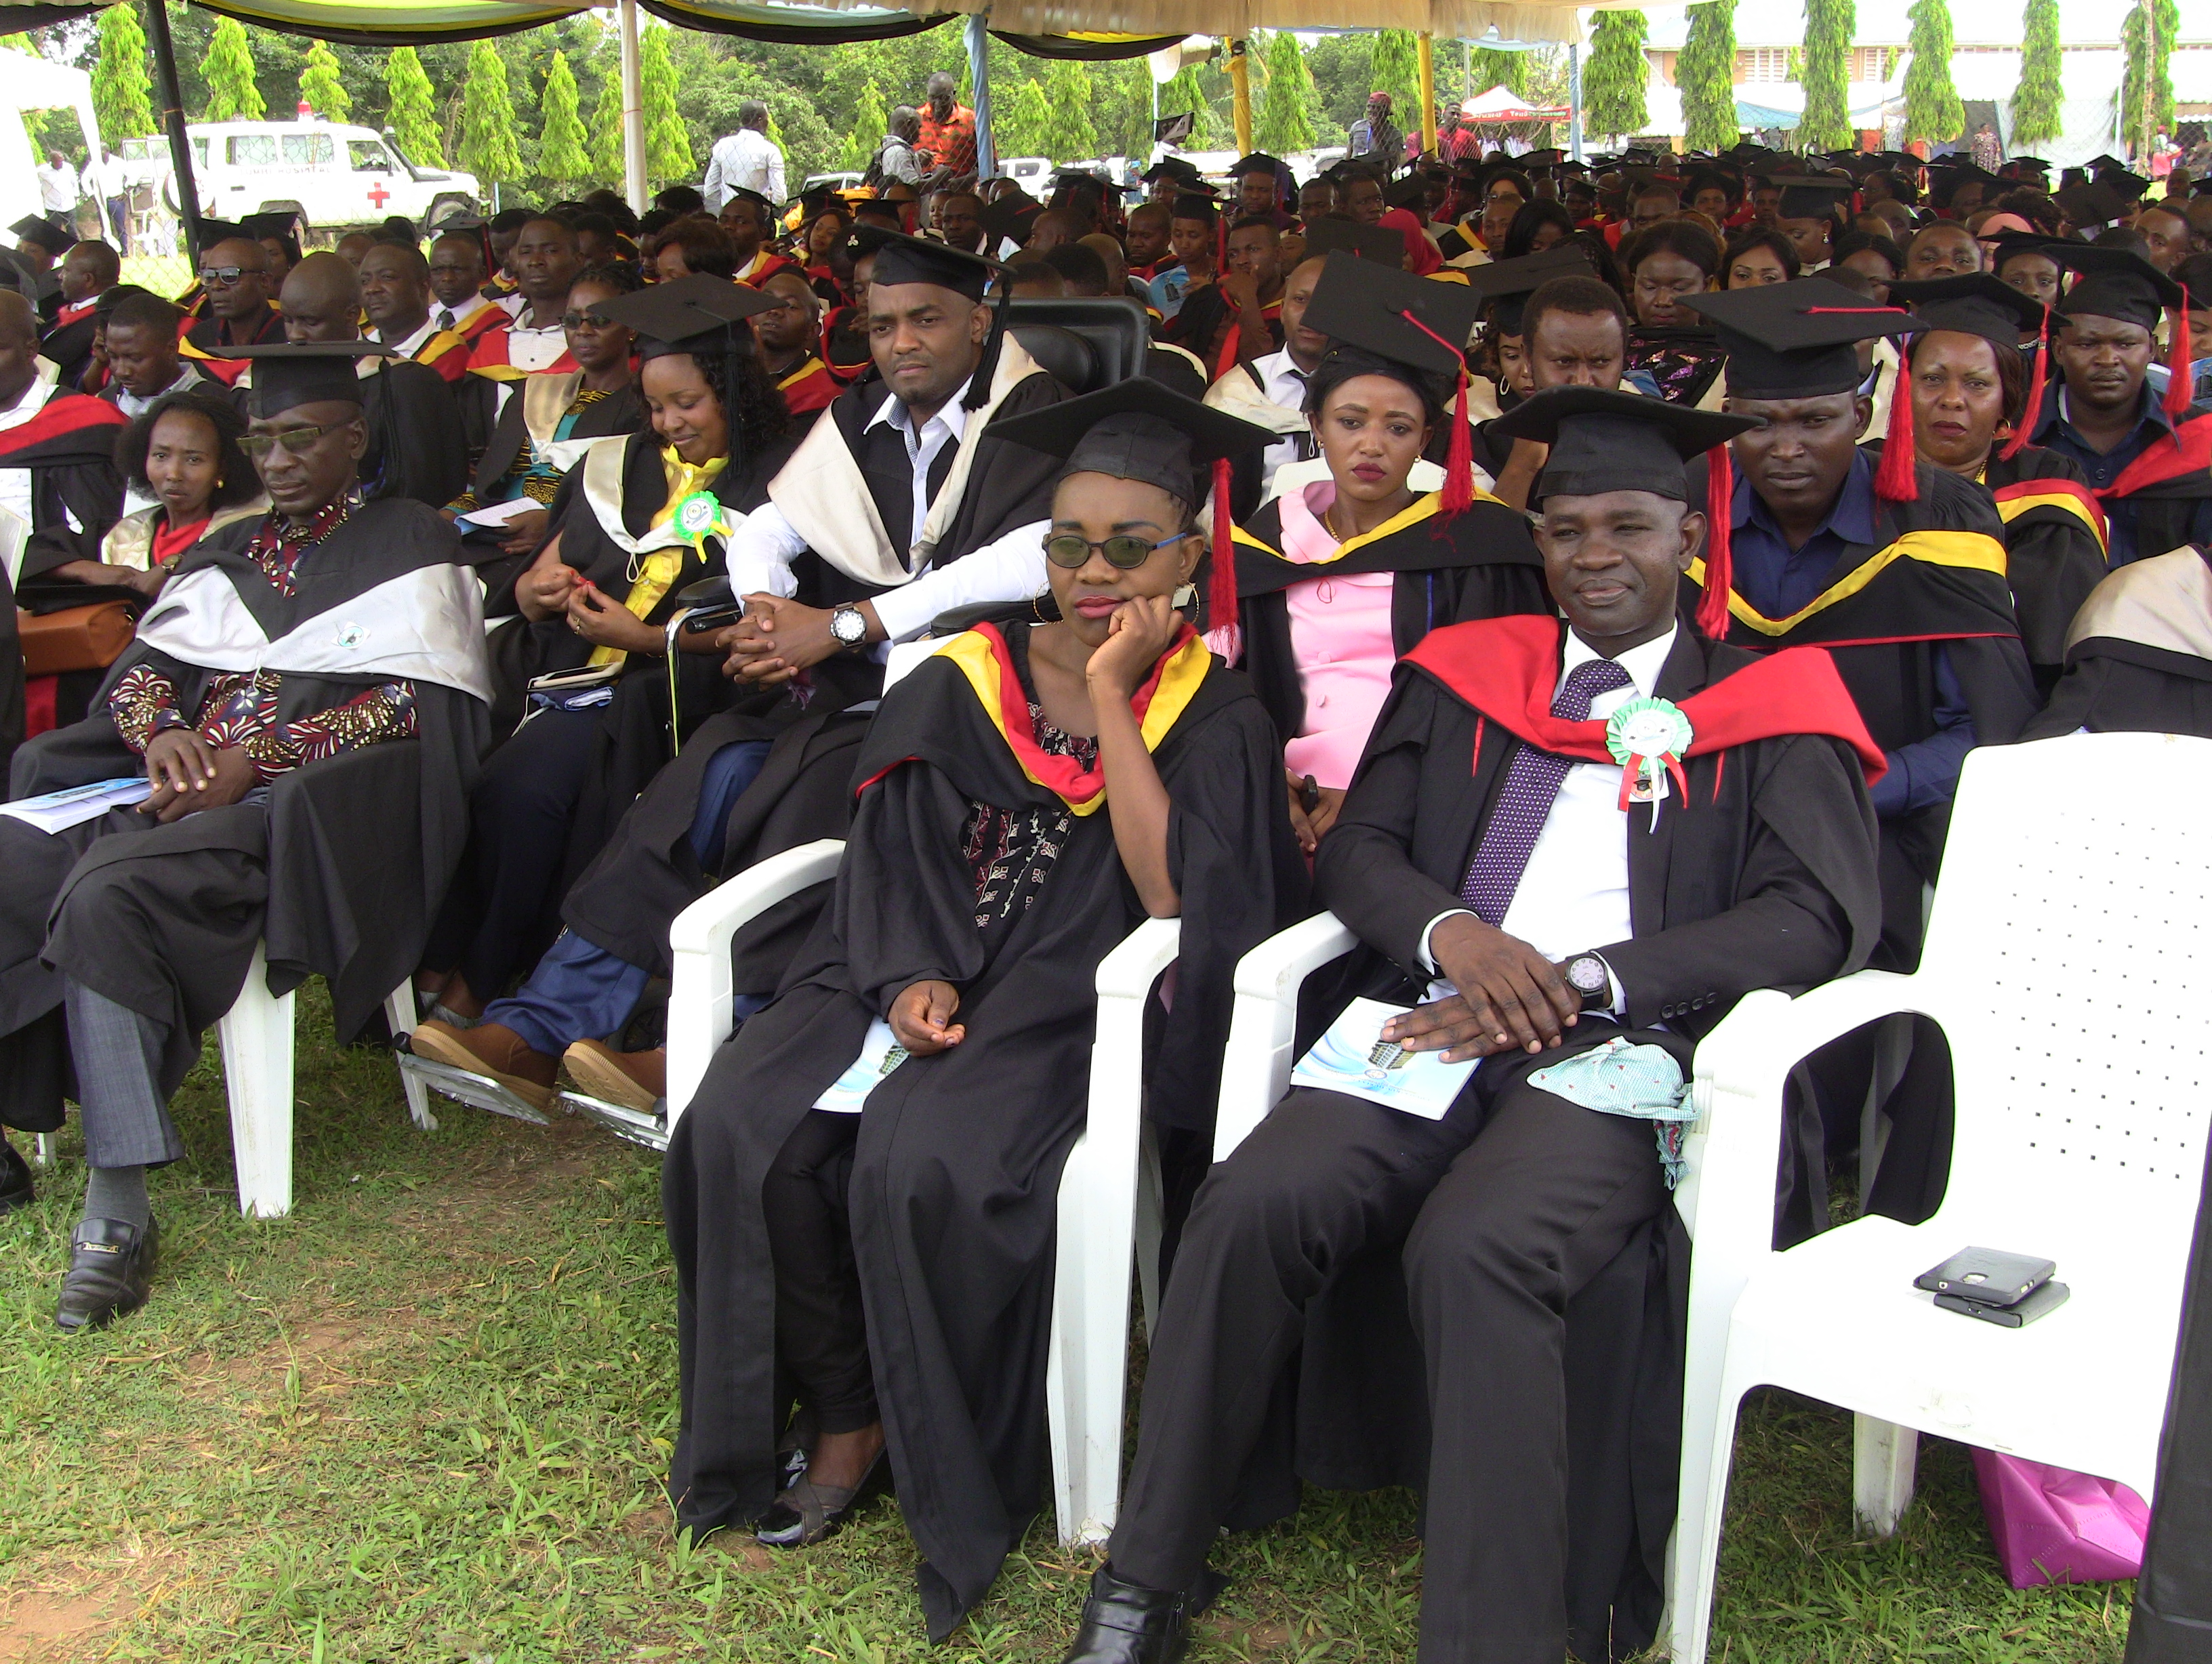 Parts of the graduate students listening to various speeches during the 37th graduation ceremonyof the Open University of Tanzania held on 28th September 2019 at Bungo, Kibaha